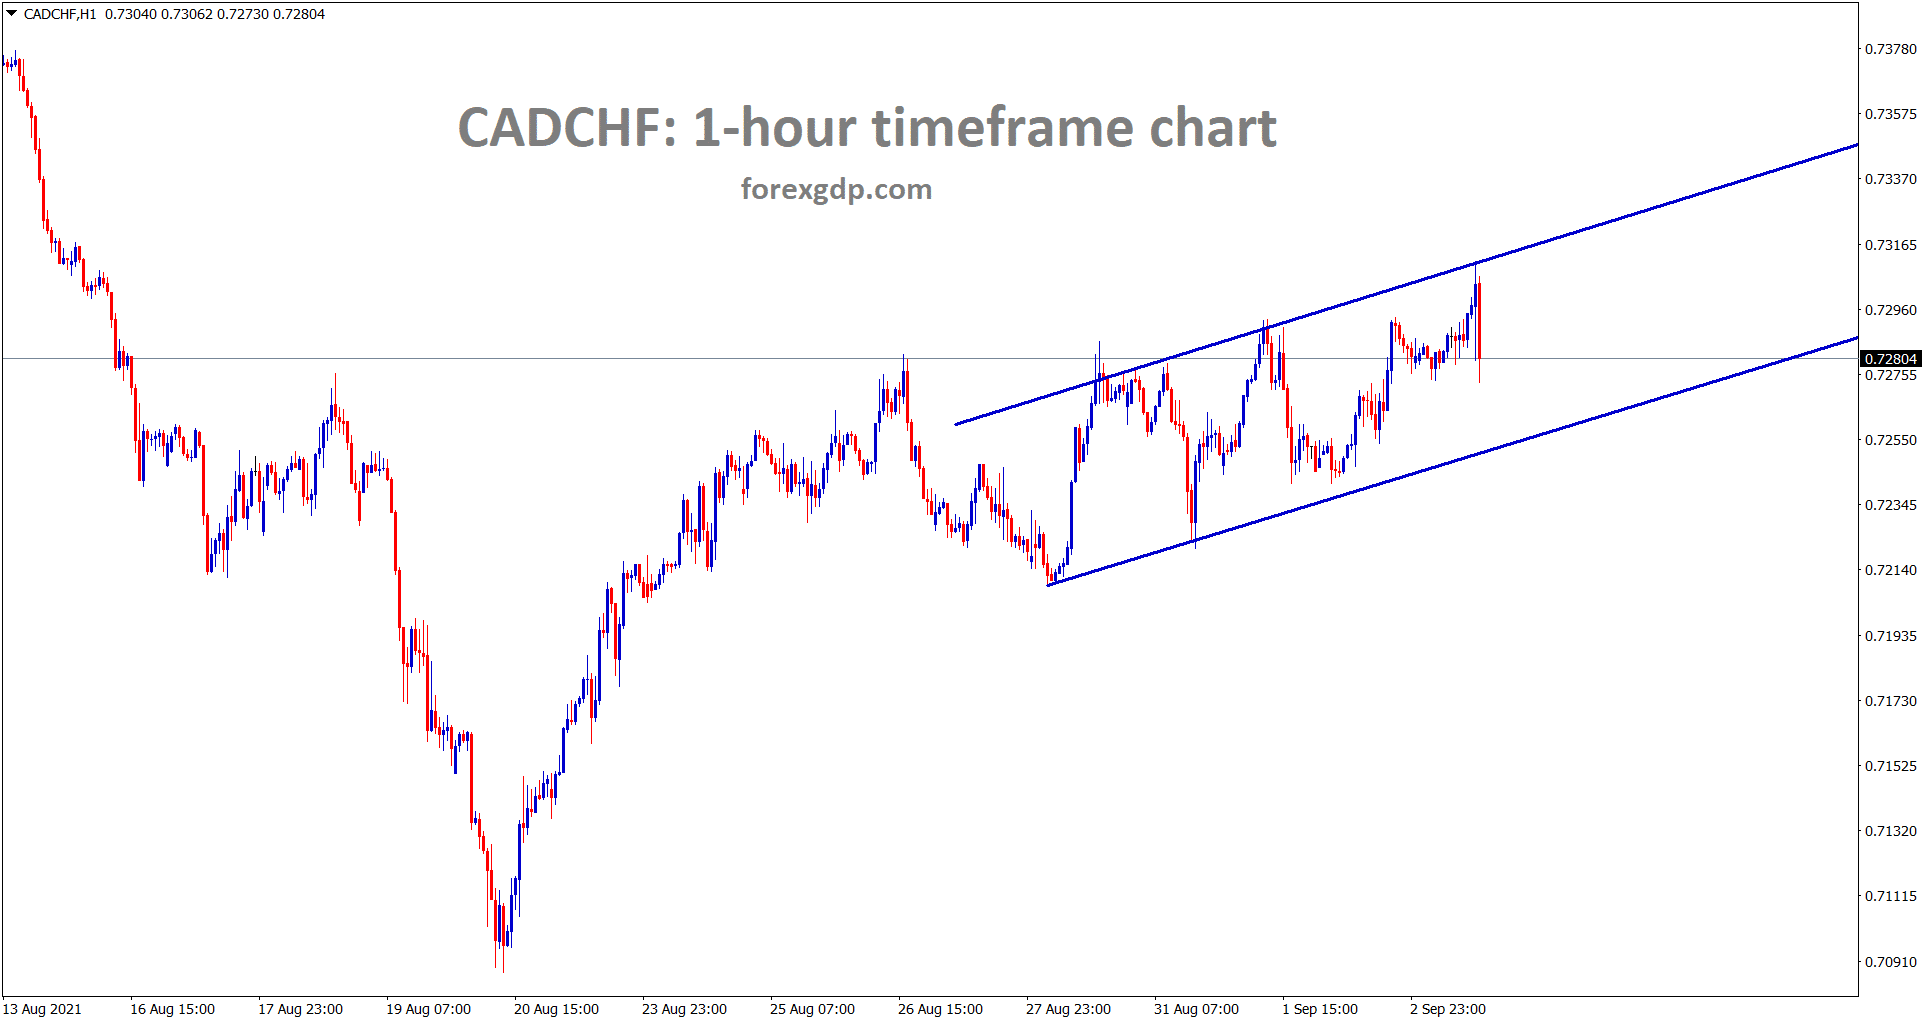 CADCHF is moving in an Ascending channel range in the hourly chart